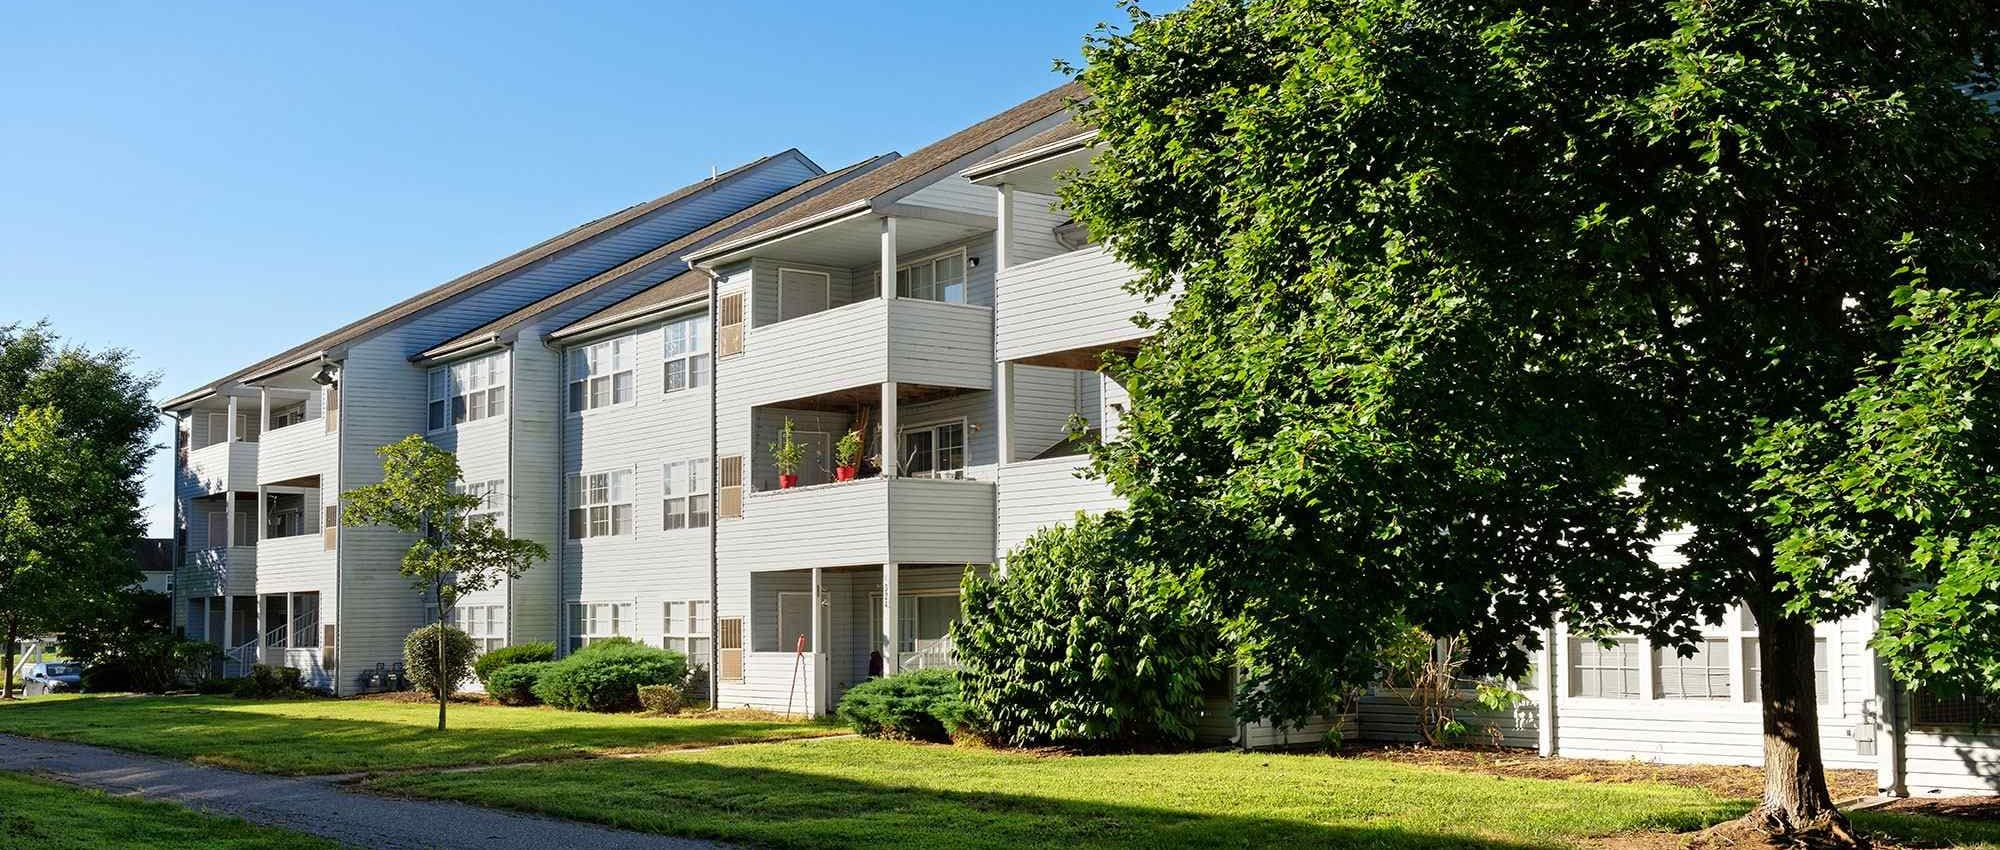 Apartments at Village of Westover in Dover, Delaware